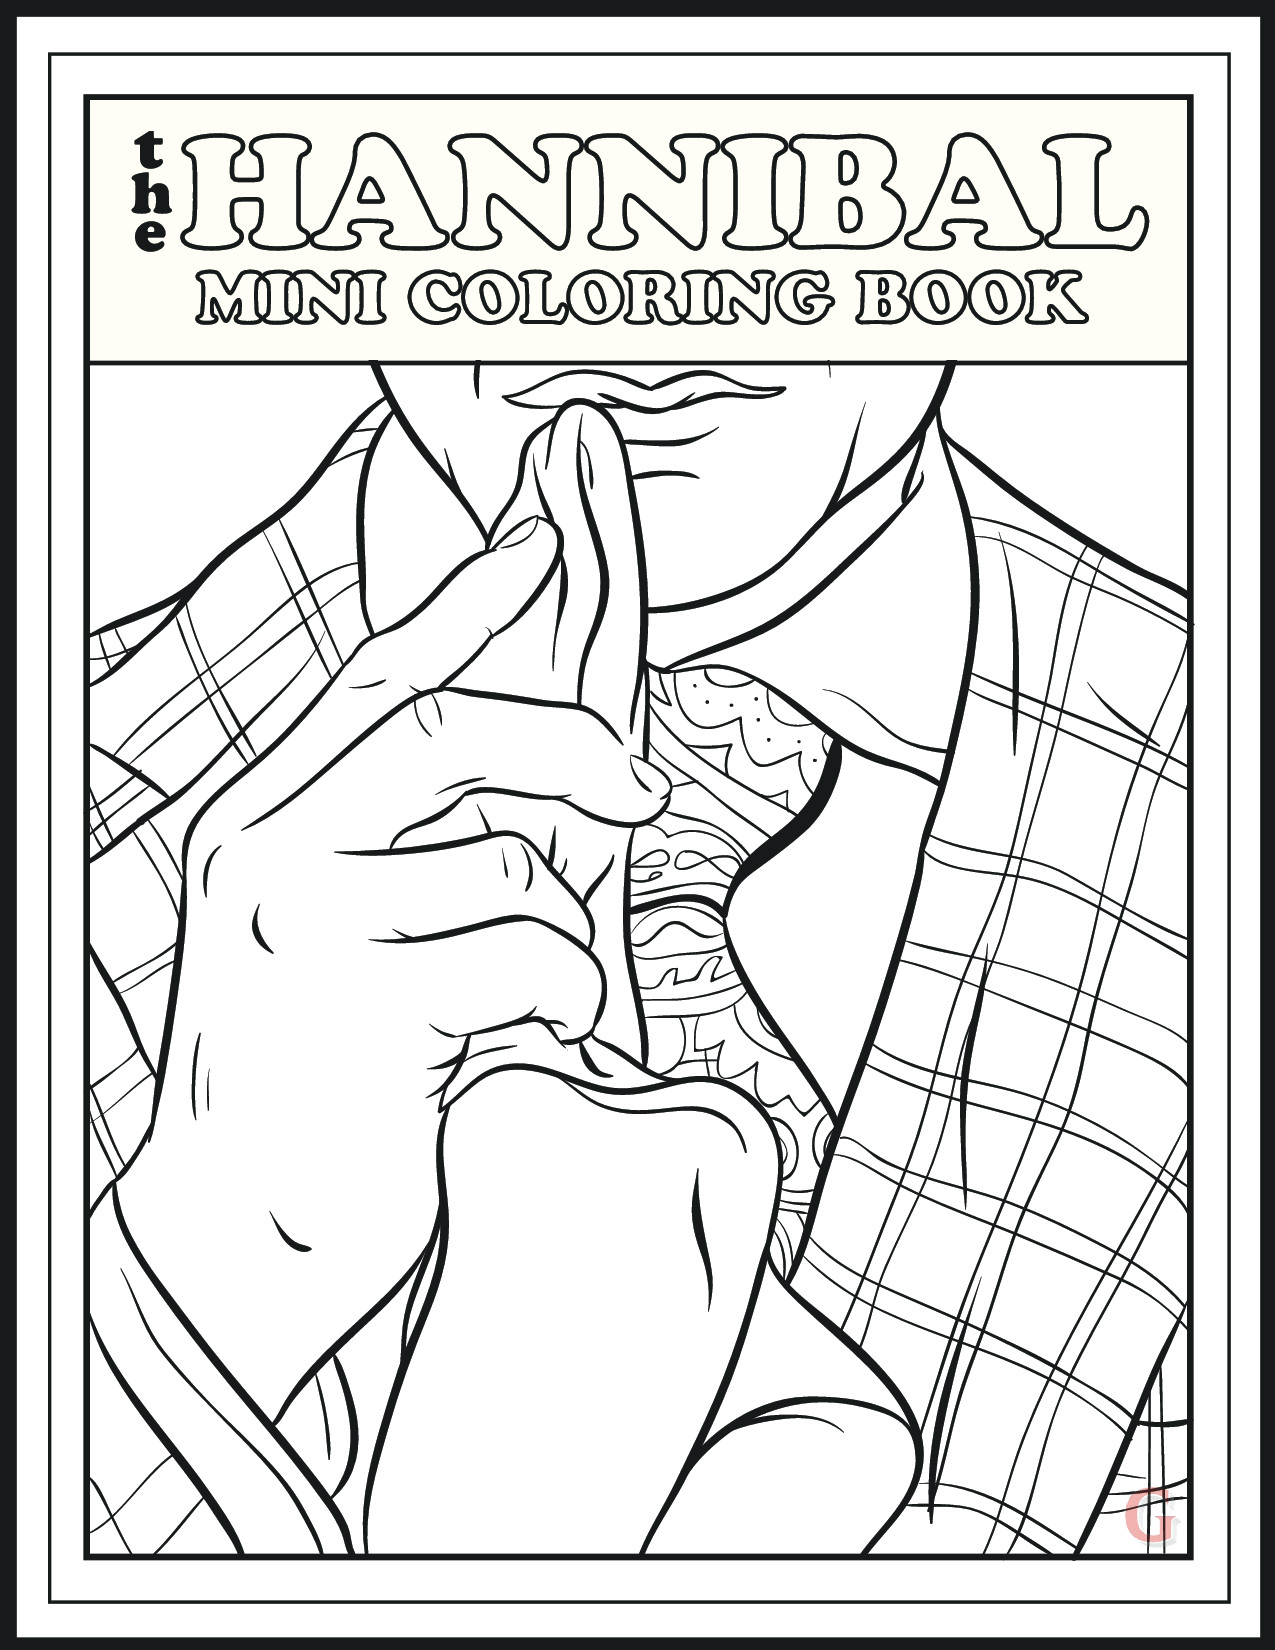 hannibal_cover